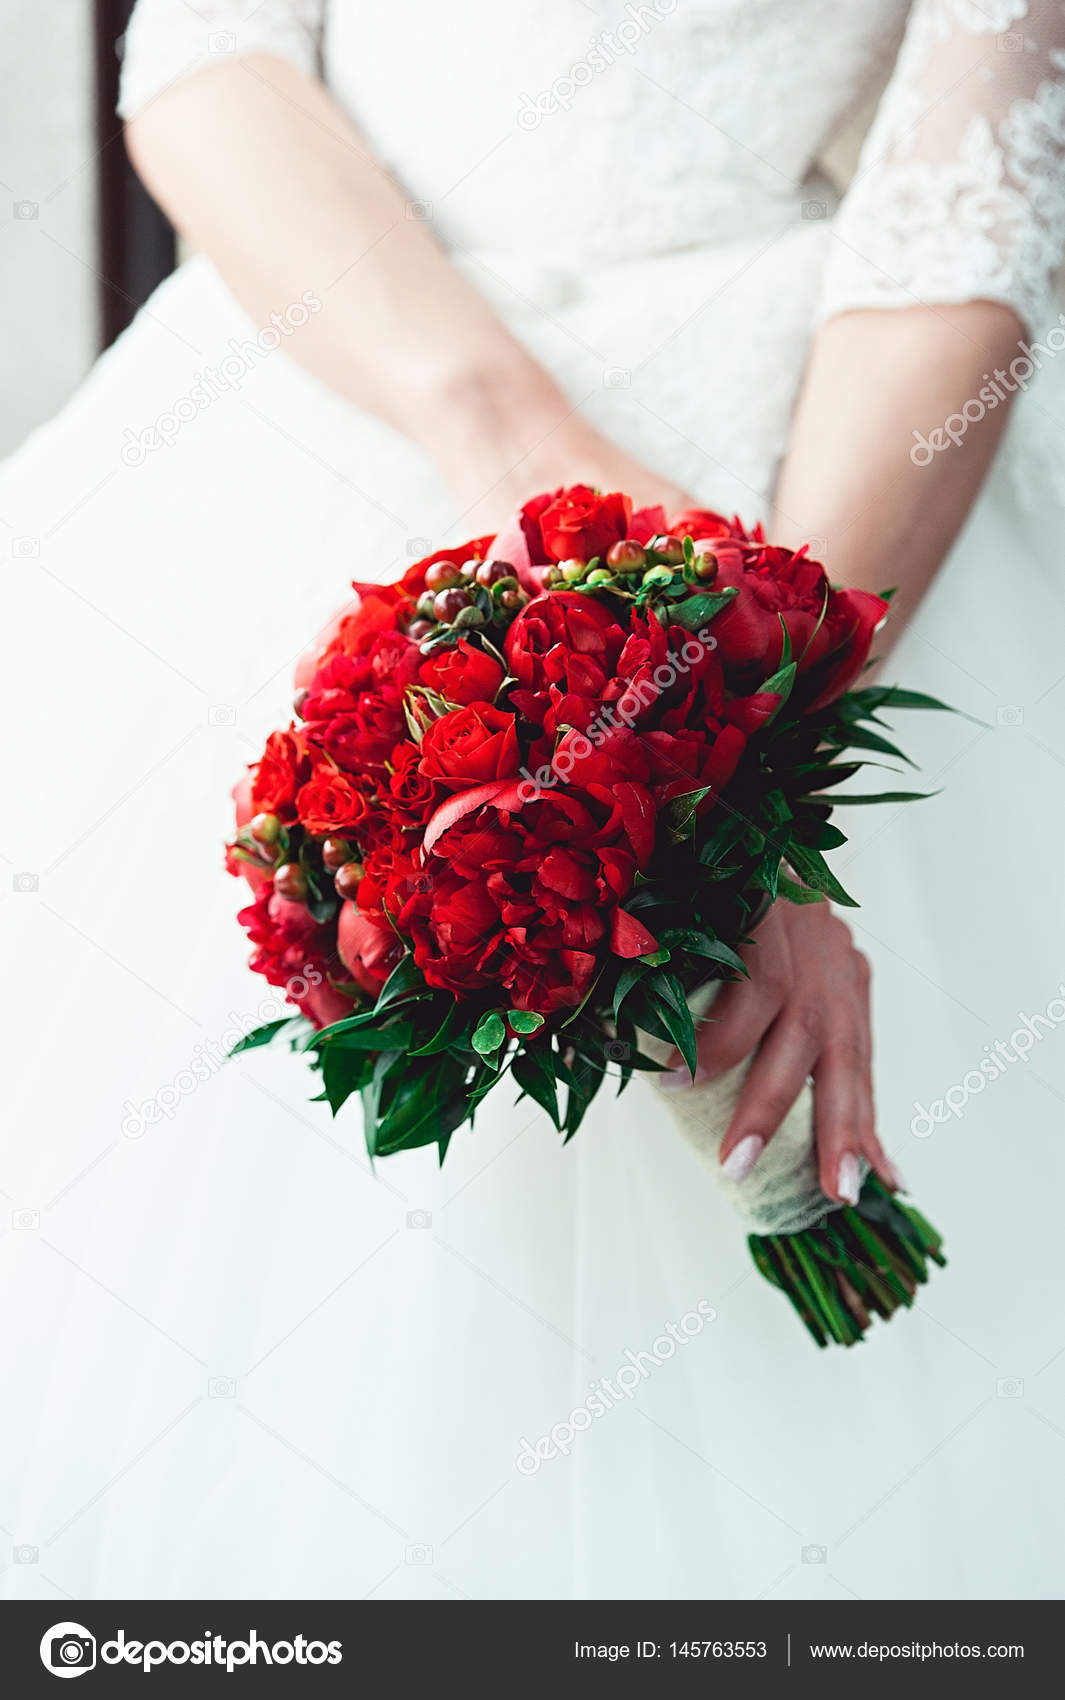 Black Wedding Dress With Red Roses Bride In A Luxurious Wedding